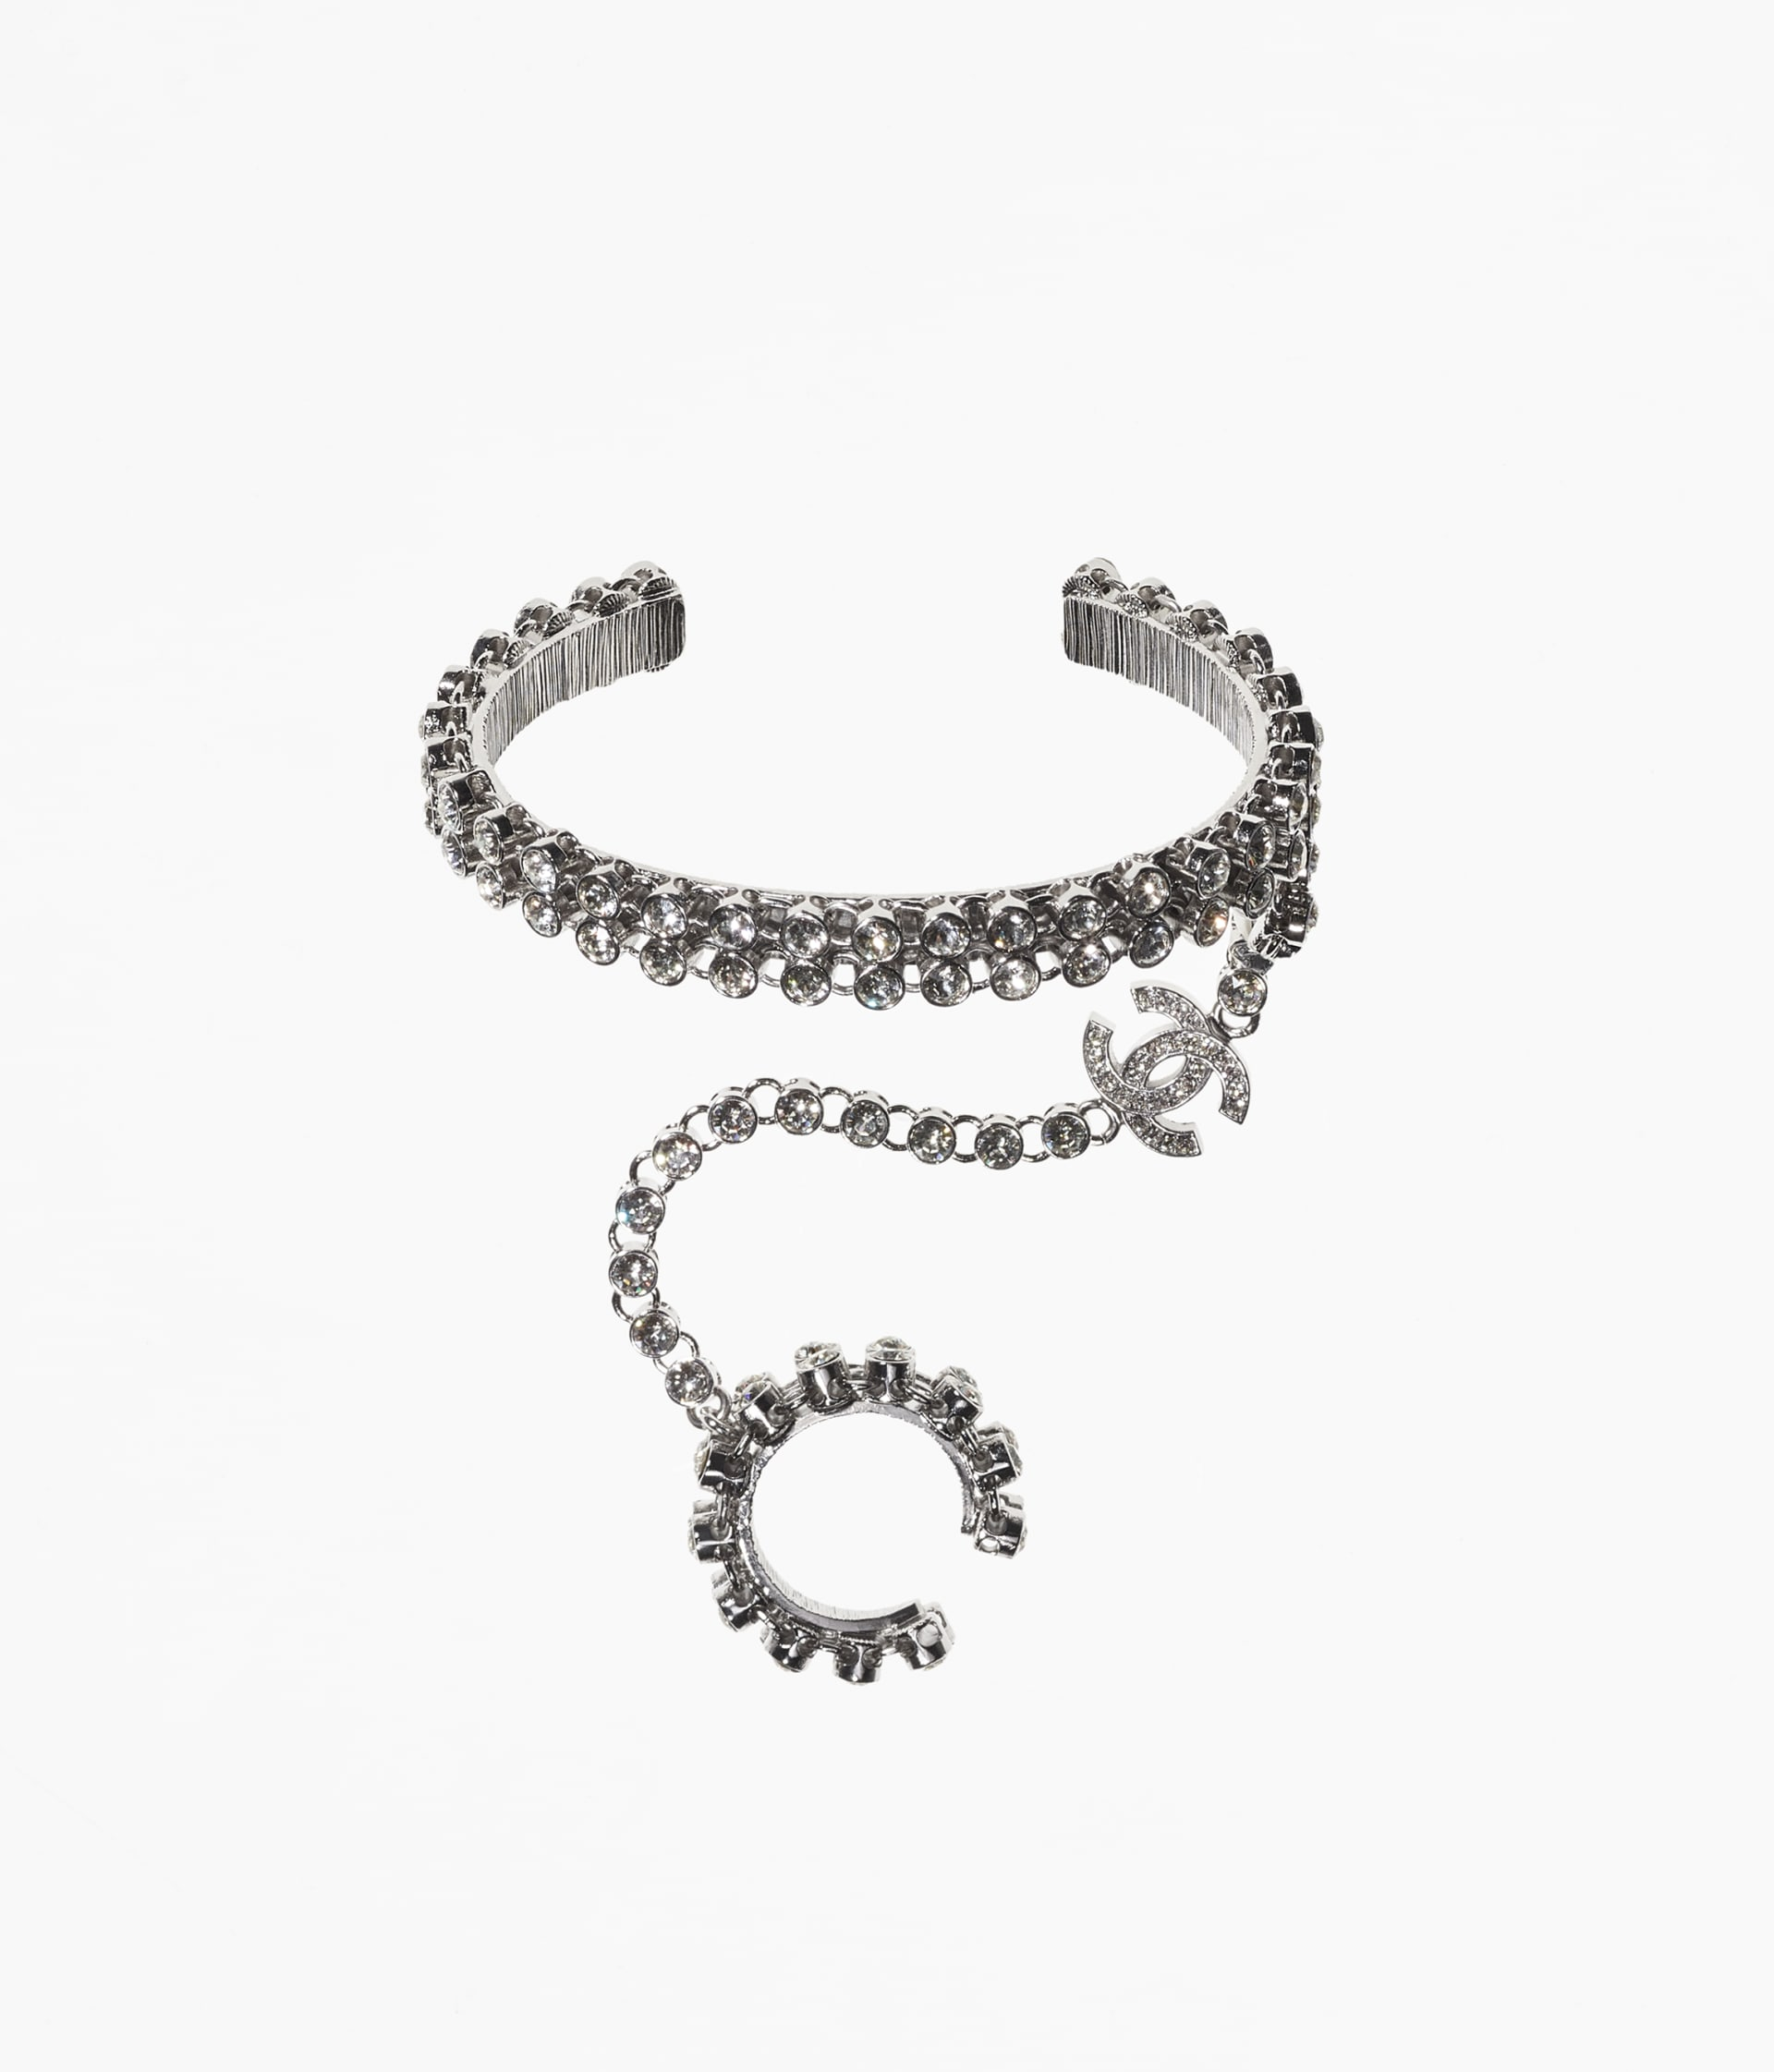 image 1 - Bracelet - Metal, Strass & Glass Pearls - Silver, Crystal & Pearly White